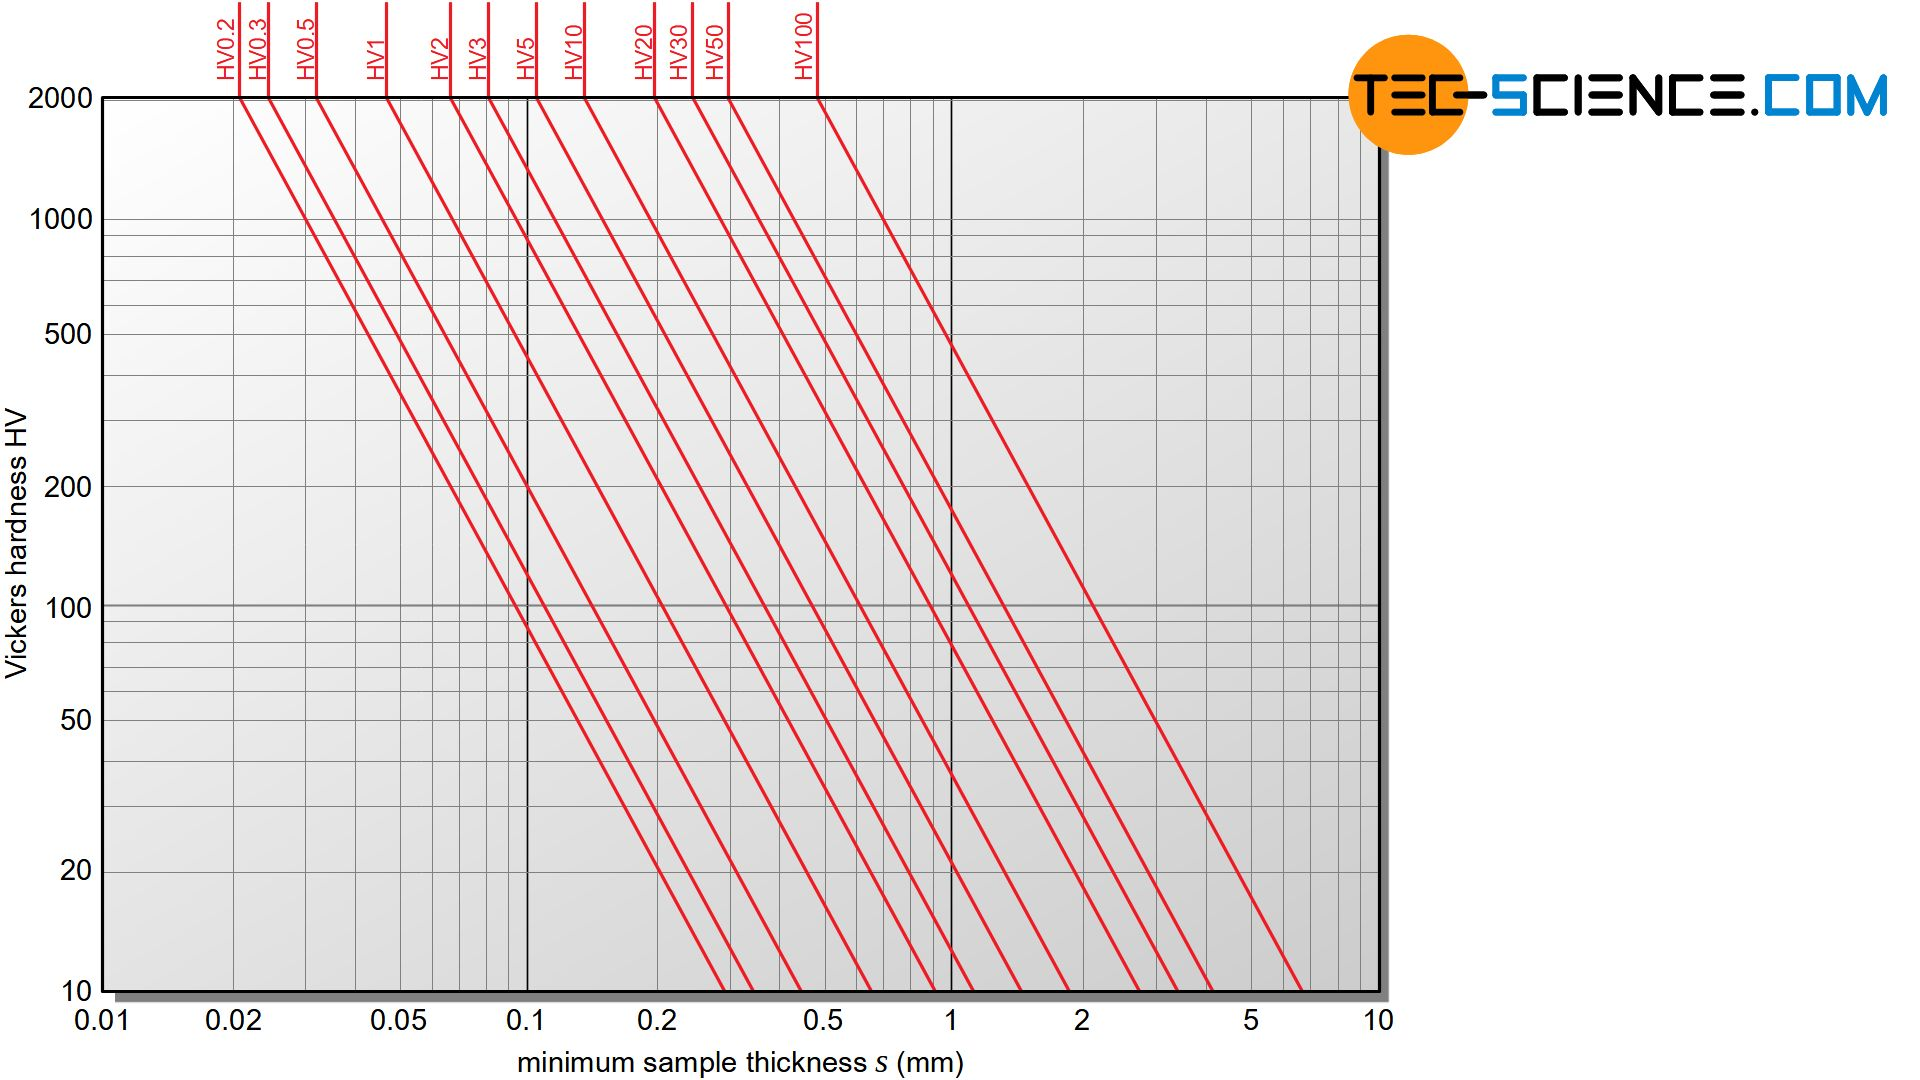 Minimum thickness of the sample as a function of hardness and test load